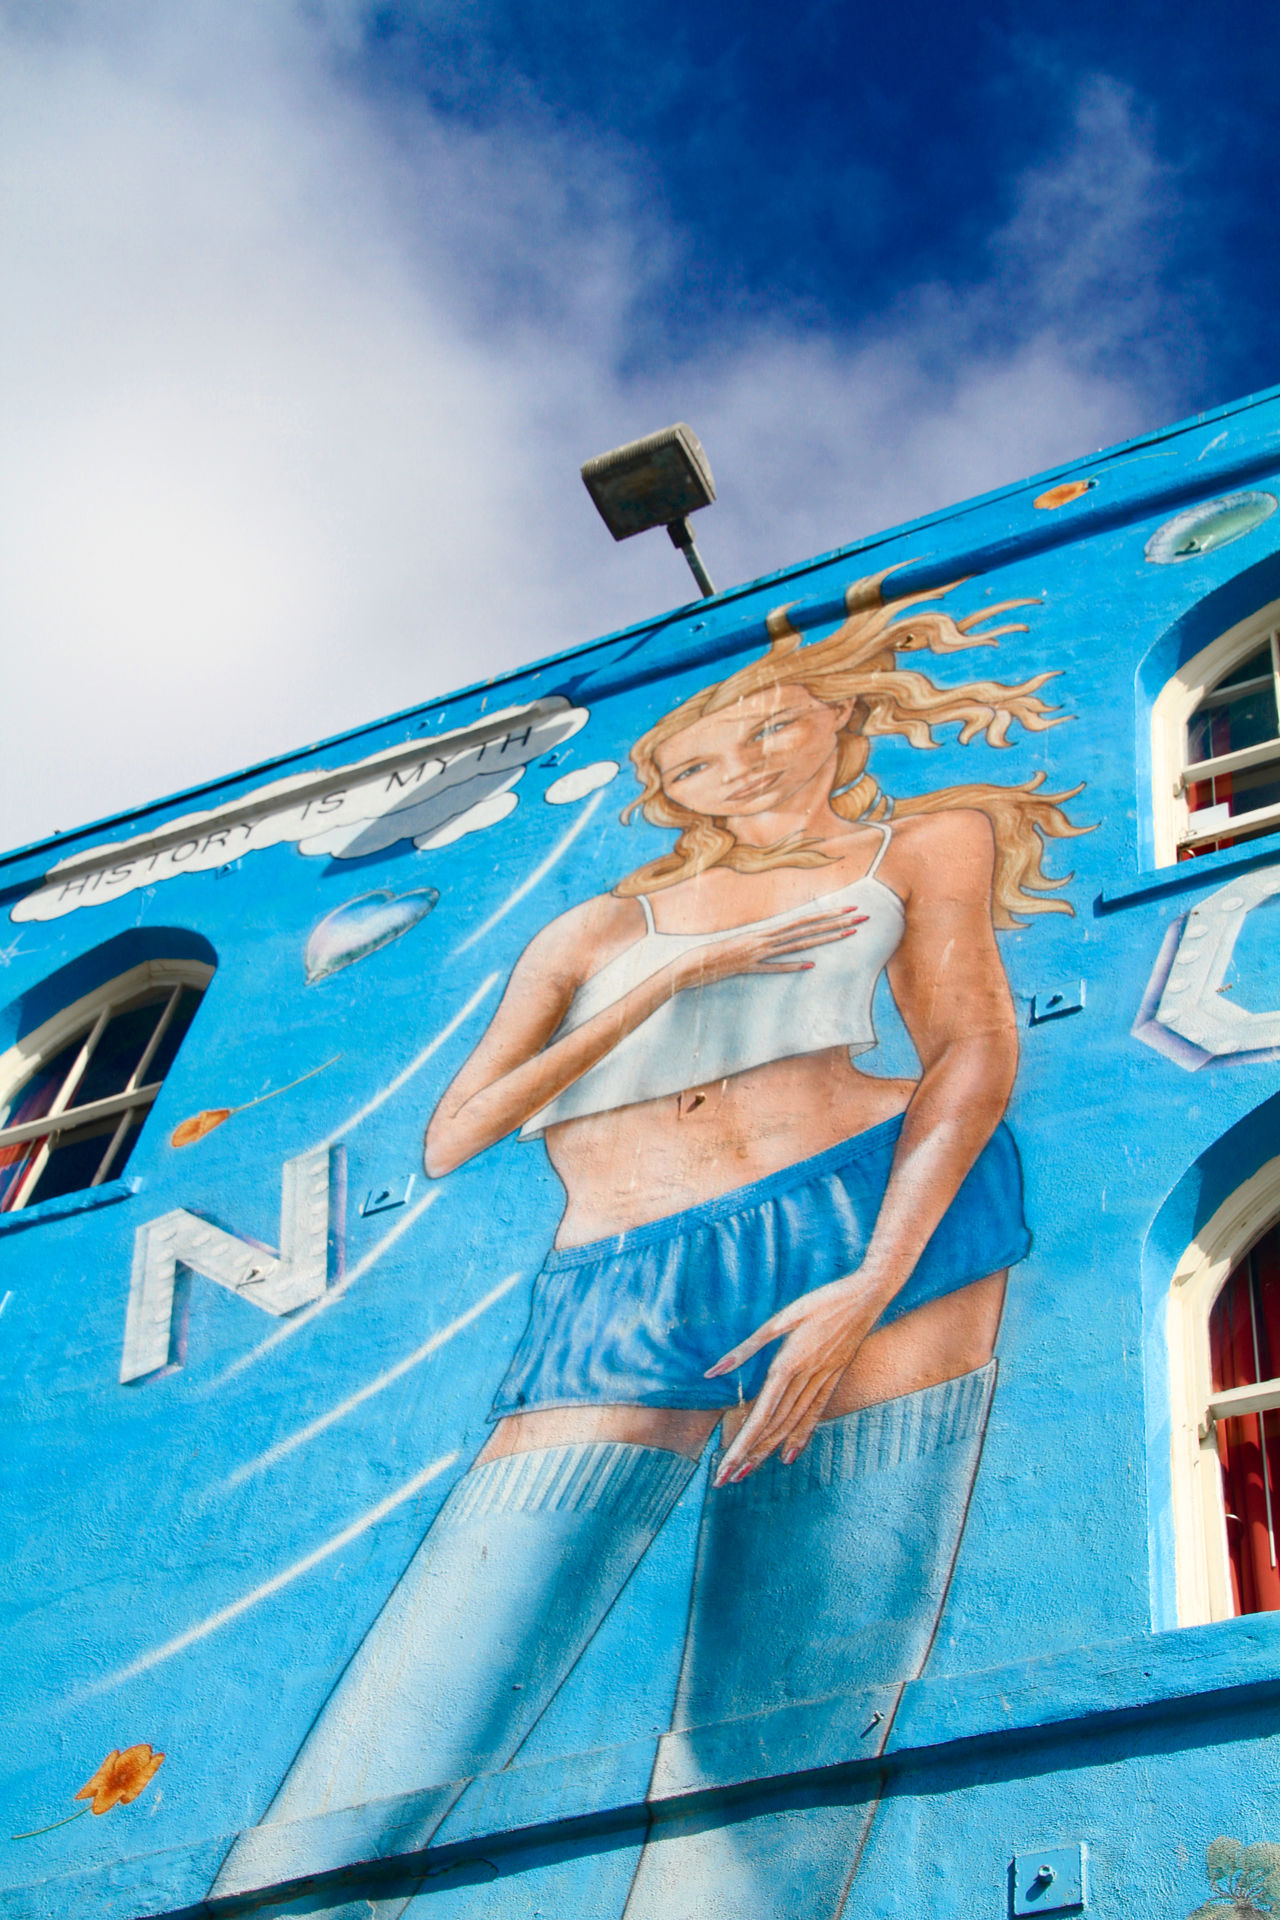 VENICE BEACH, UNITED STATES - OCT 03, 2016: view of painted walls in Venice beach in LosAngeles, california, united states 43 Golden Moments America Art, Drawing, Creativity ArtWork Blue Color California Eyeem Collection Getty Getty Images Getty X EyeEm Global Photographer-Collection Hello World Los Angeles, California Santa Monica Santa Monica Beach Sky Stockphoto The OO Mission United States Venice Beach Venus Women